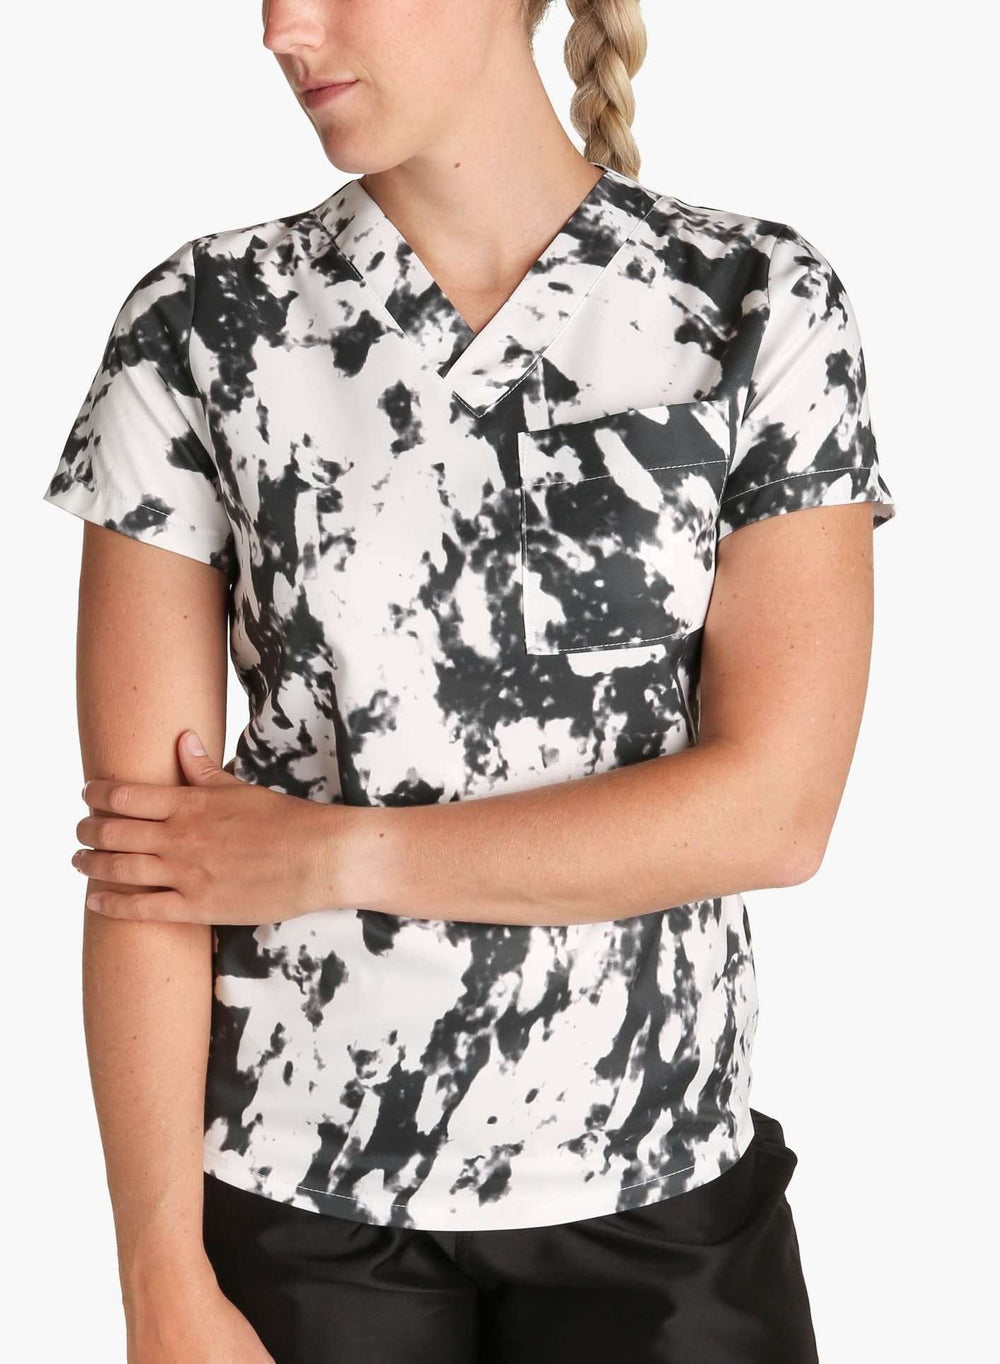 womens stretch scrub top in athletic abstract print black and white color front